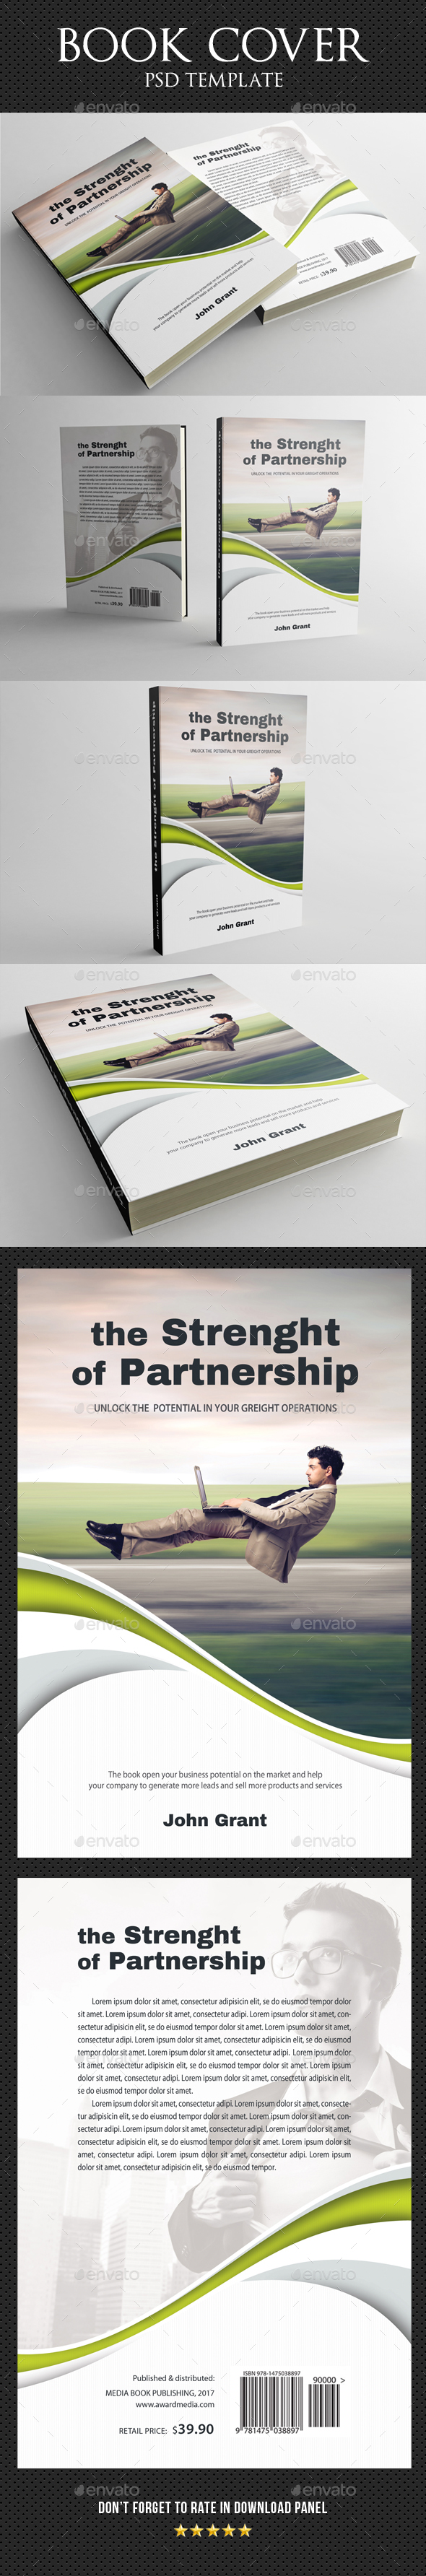 Book Cover Template 23 By Rapidgraf Graphicriver